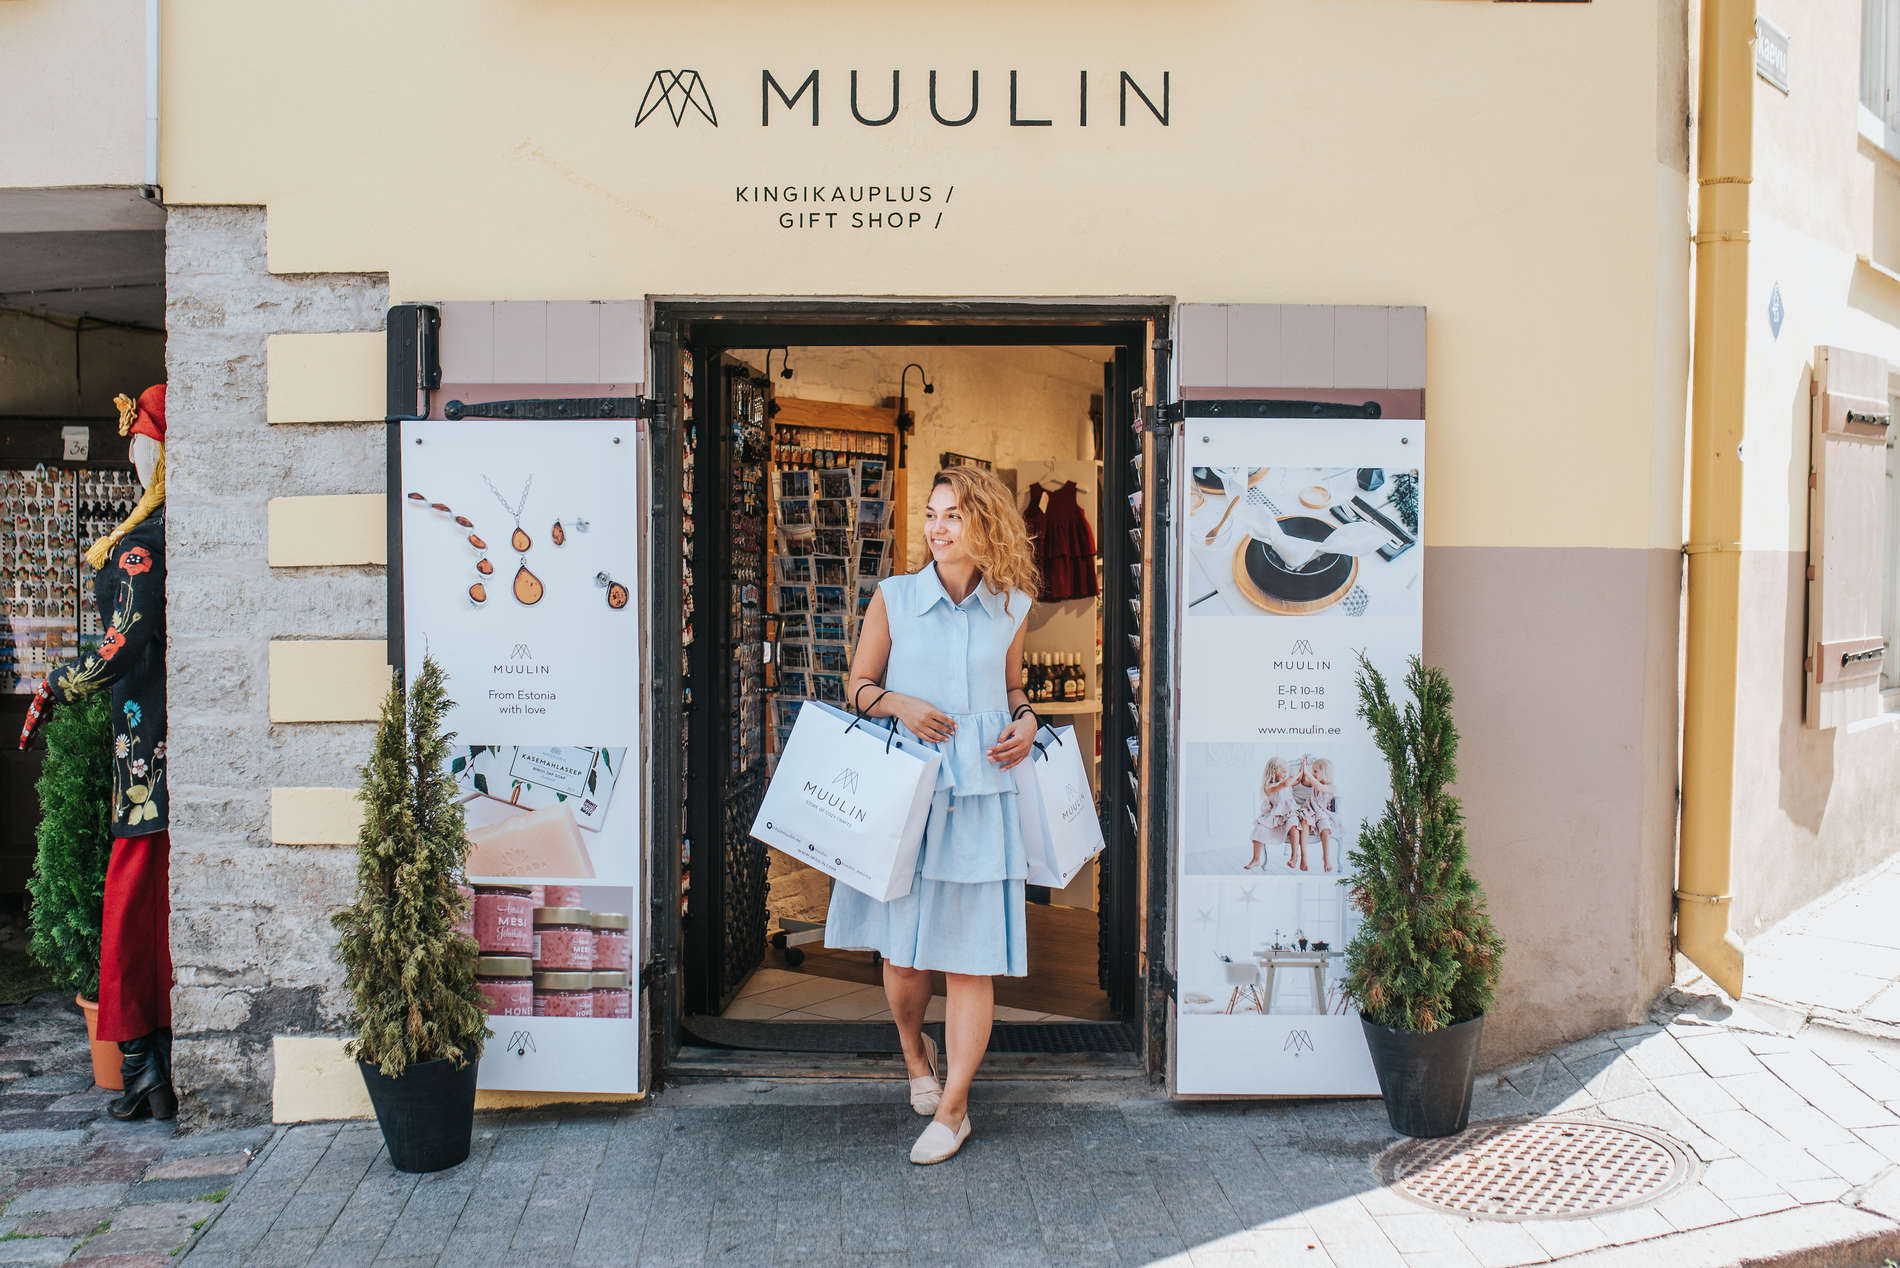 Muulin shop, outside